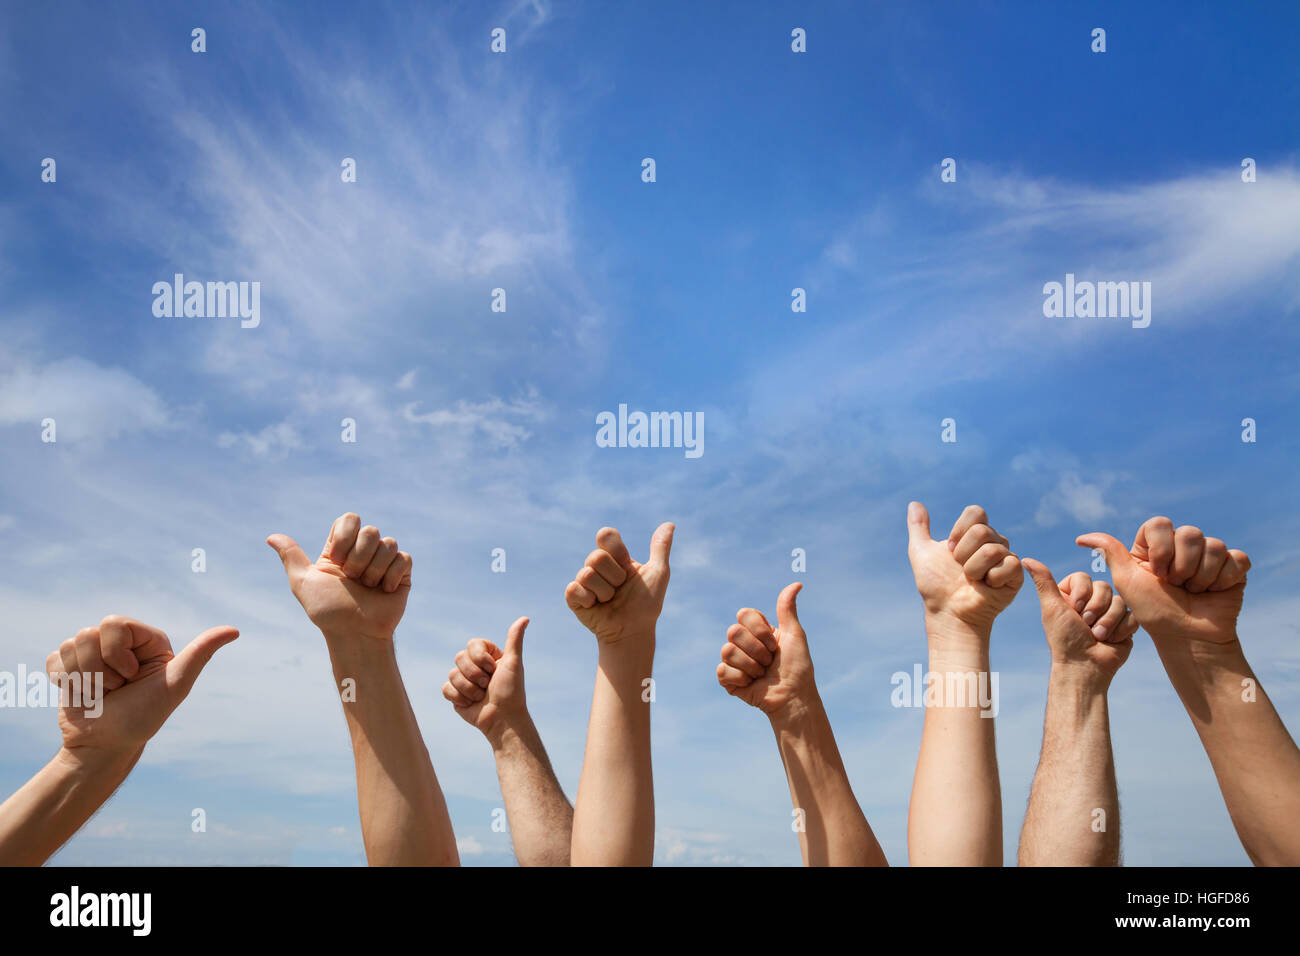 like concept, many hands showing thumb up or ok sign on blue sky background - Stock Image